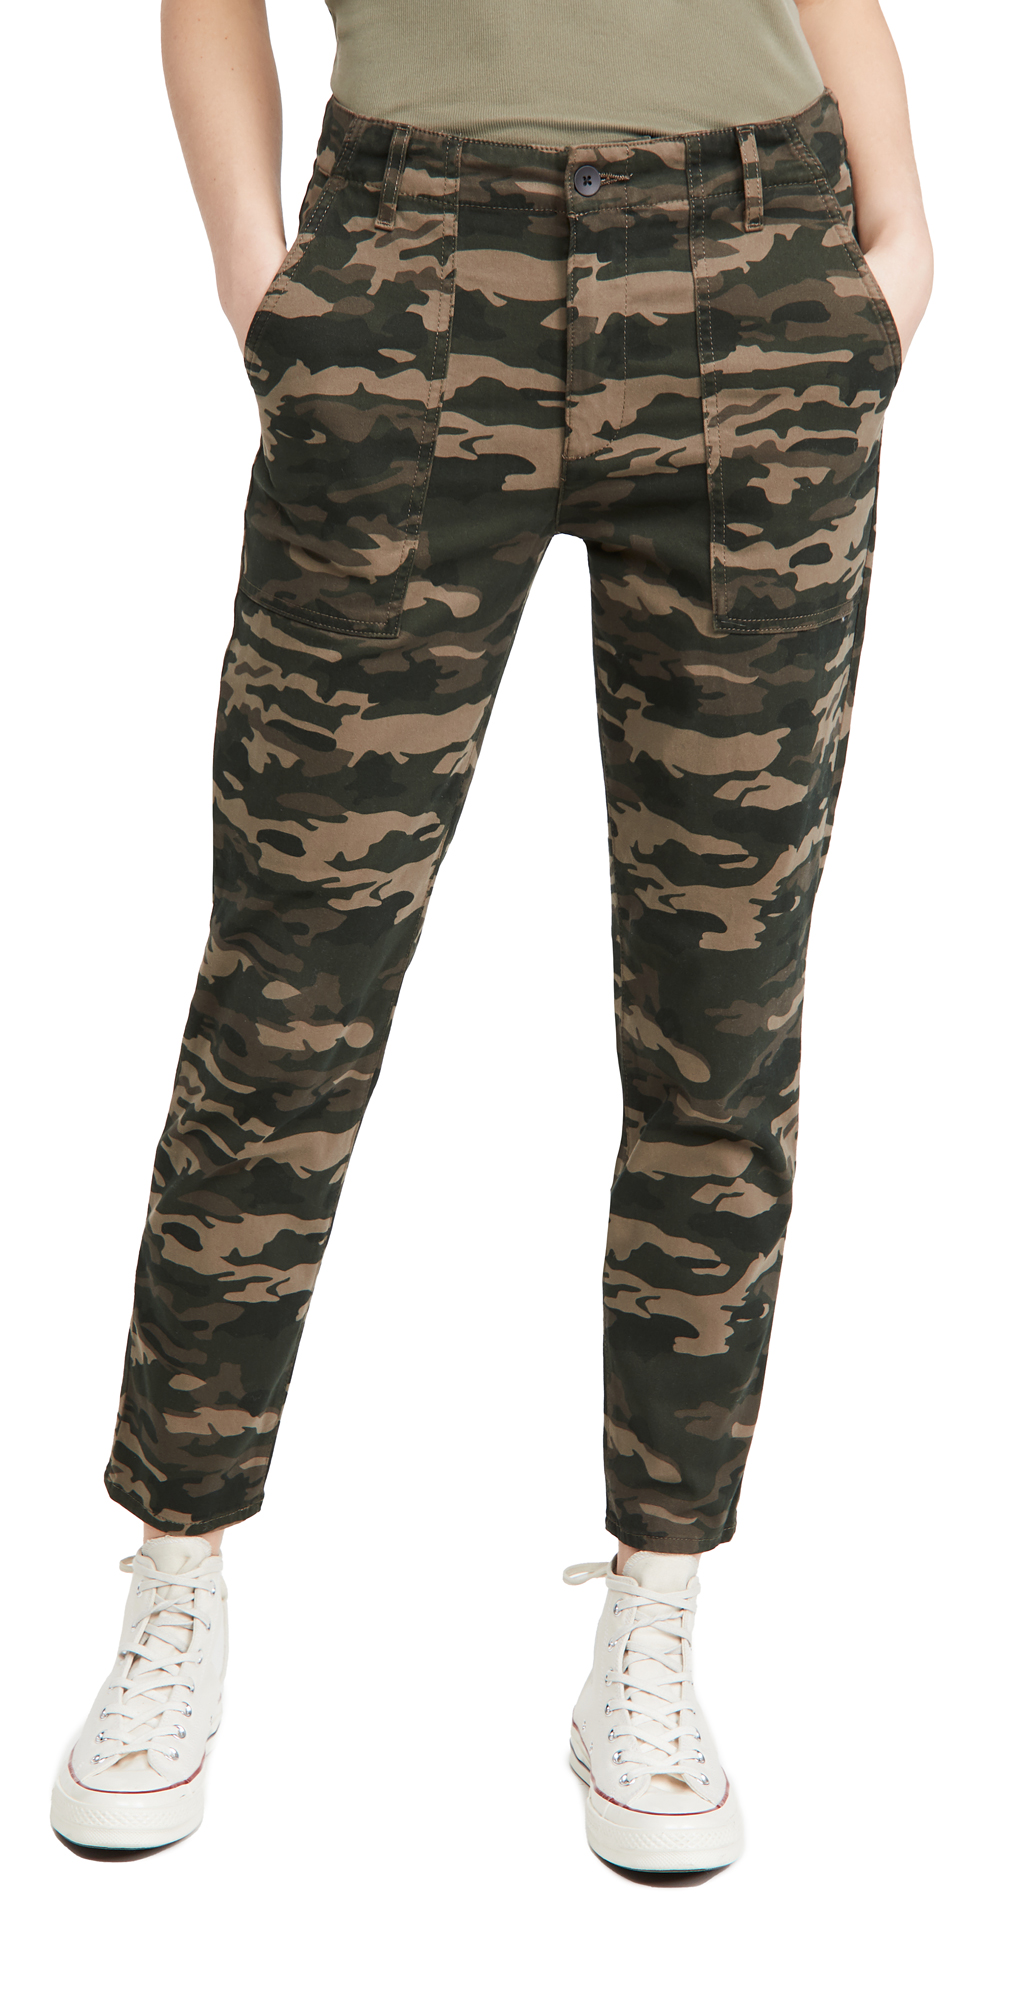 AG Caden Fatigue Pants